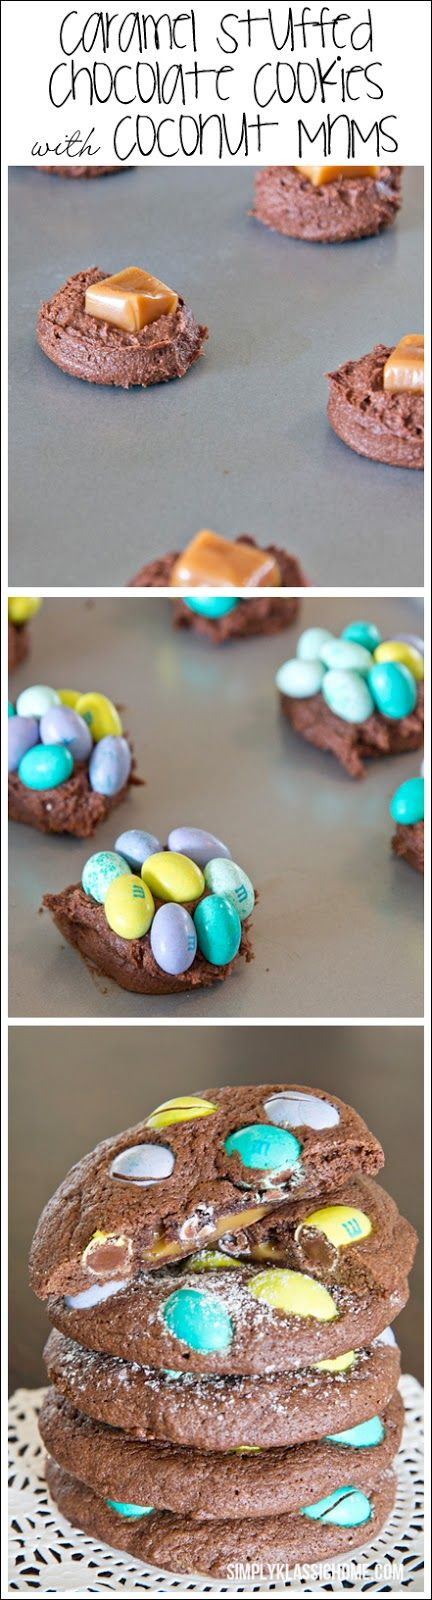 Caramel Stuffed Chocolate Cookies with Coconut M & Ms www.simplyklassichome.com